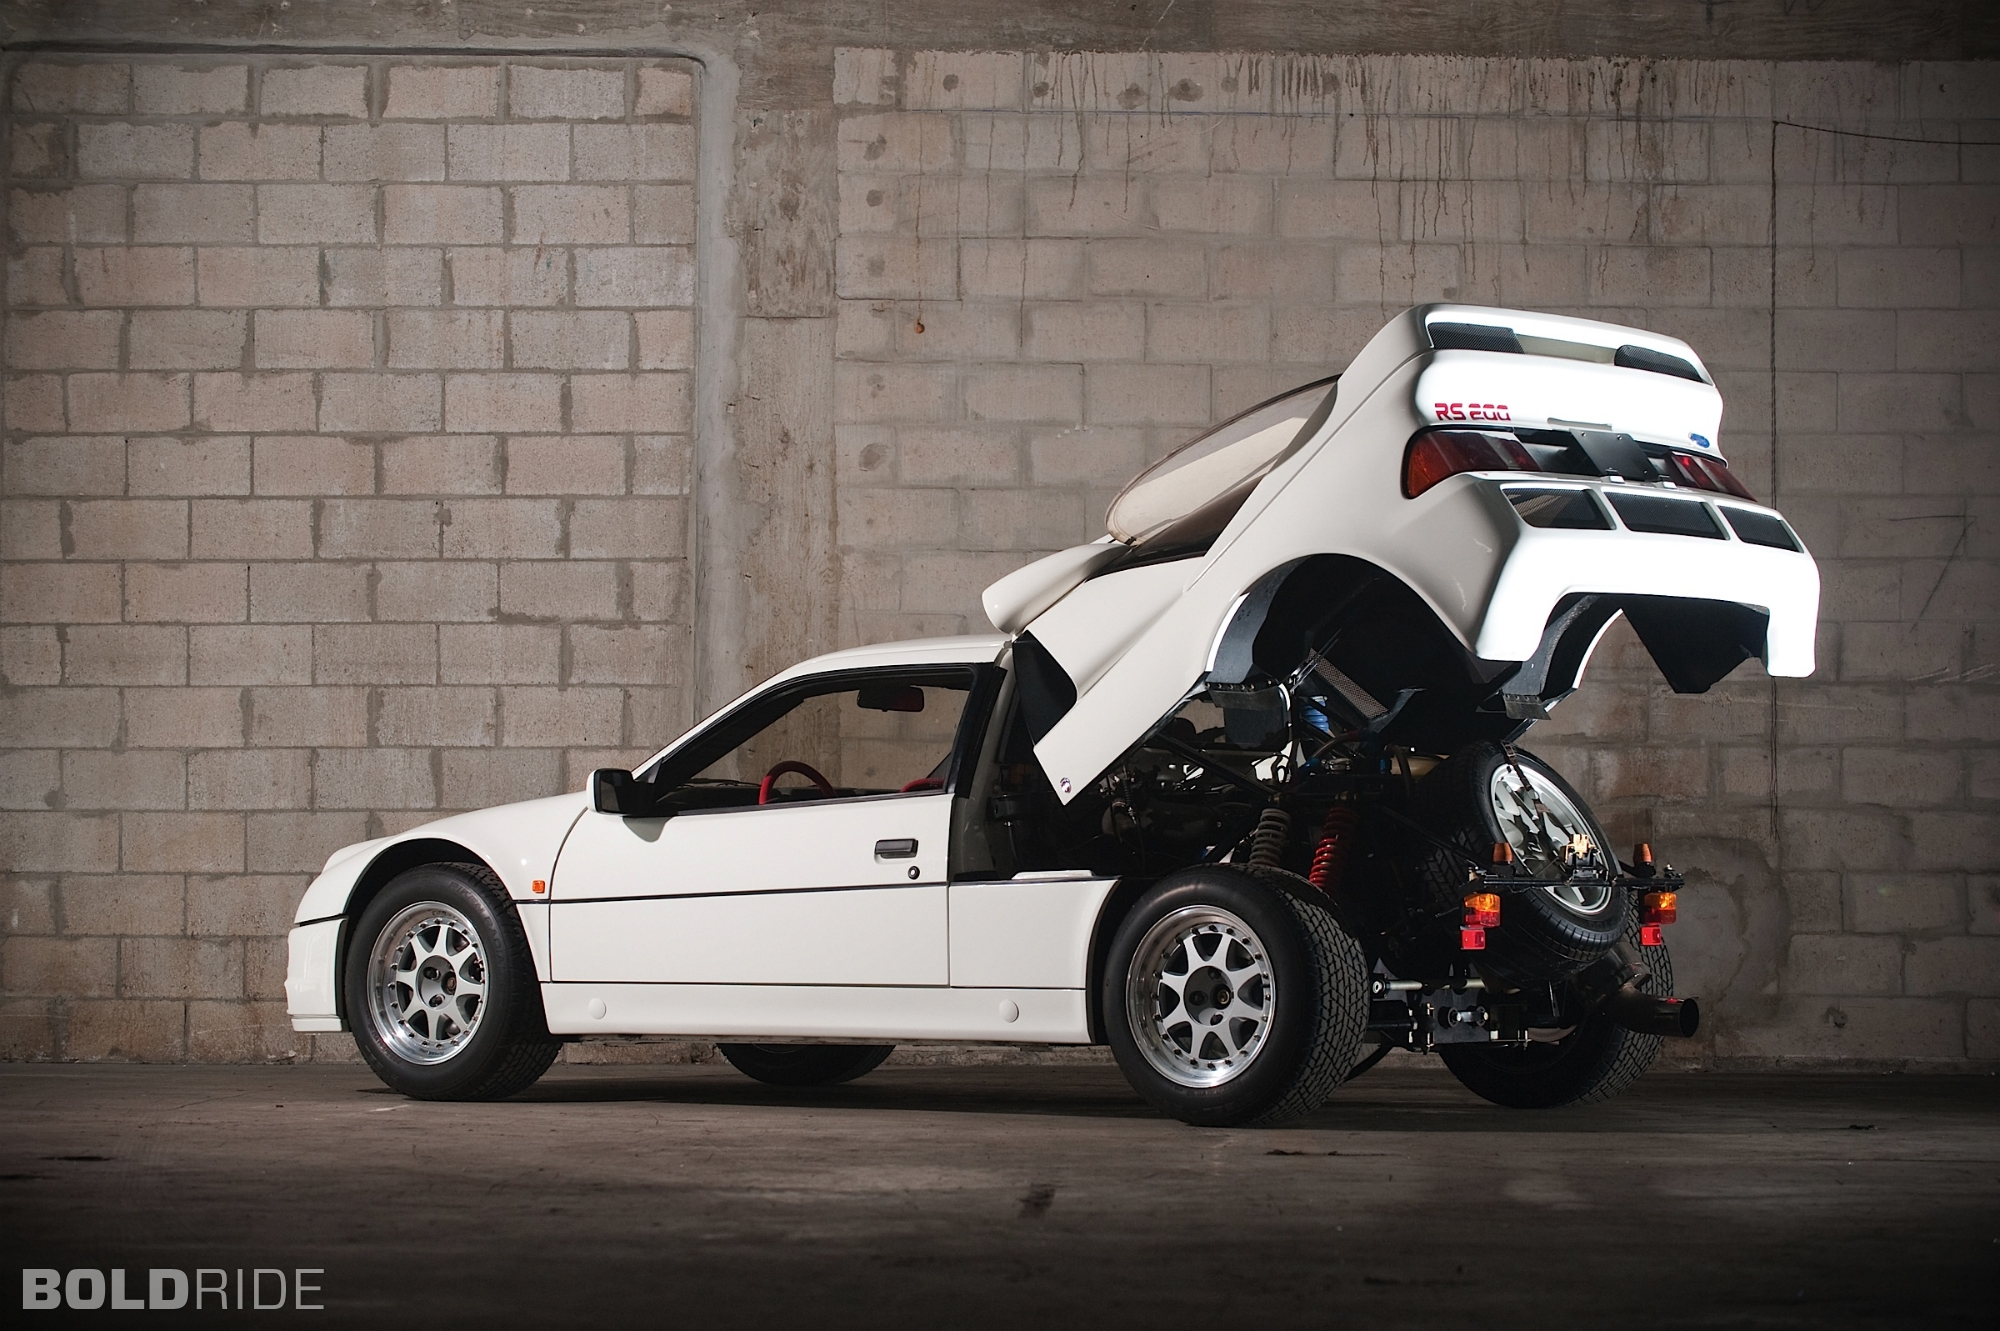 ford-rs200-evolution.2000x1331.Jan-04-2012_21.28.34.206026